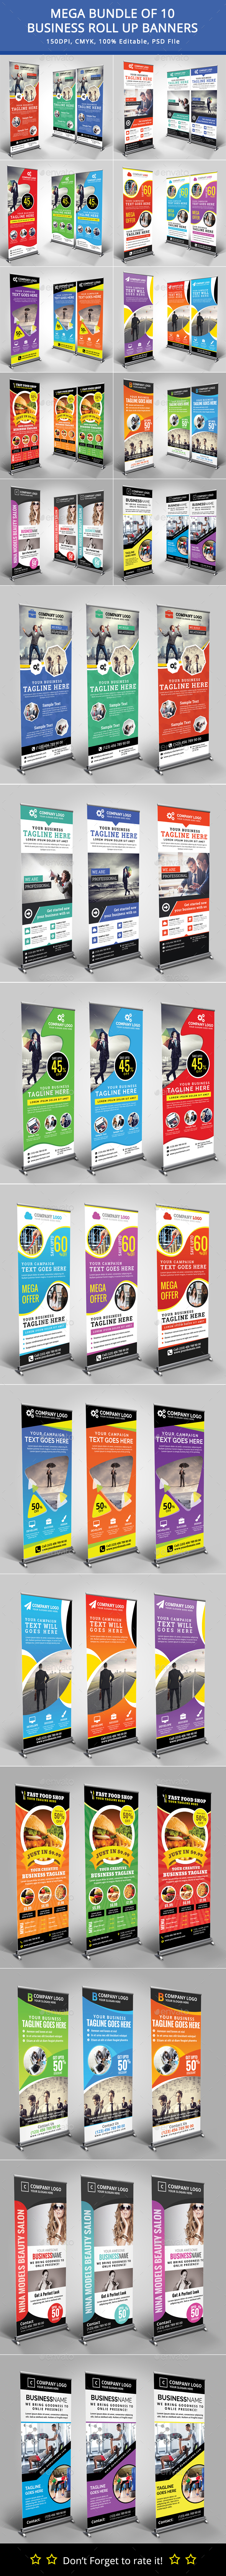 Bundle of 10 Business Roll Up Banners - Signage Print Templates